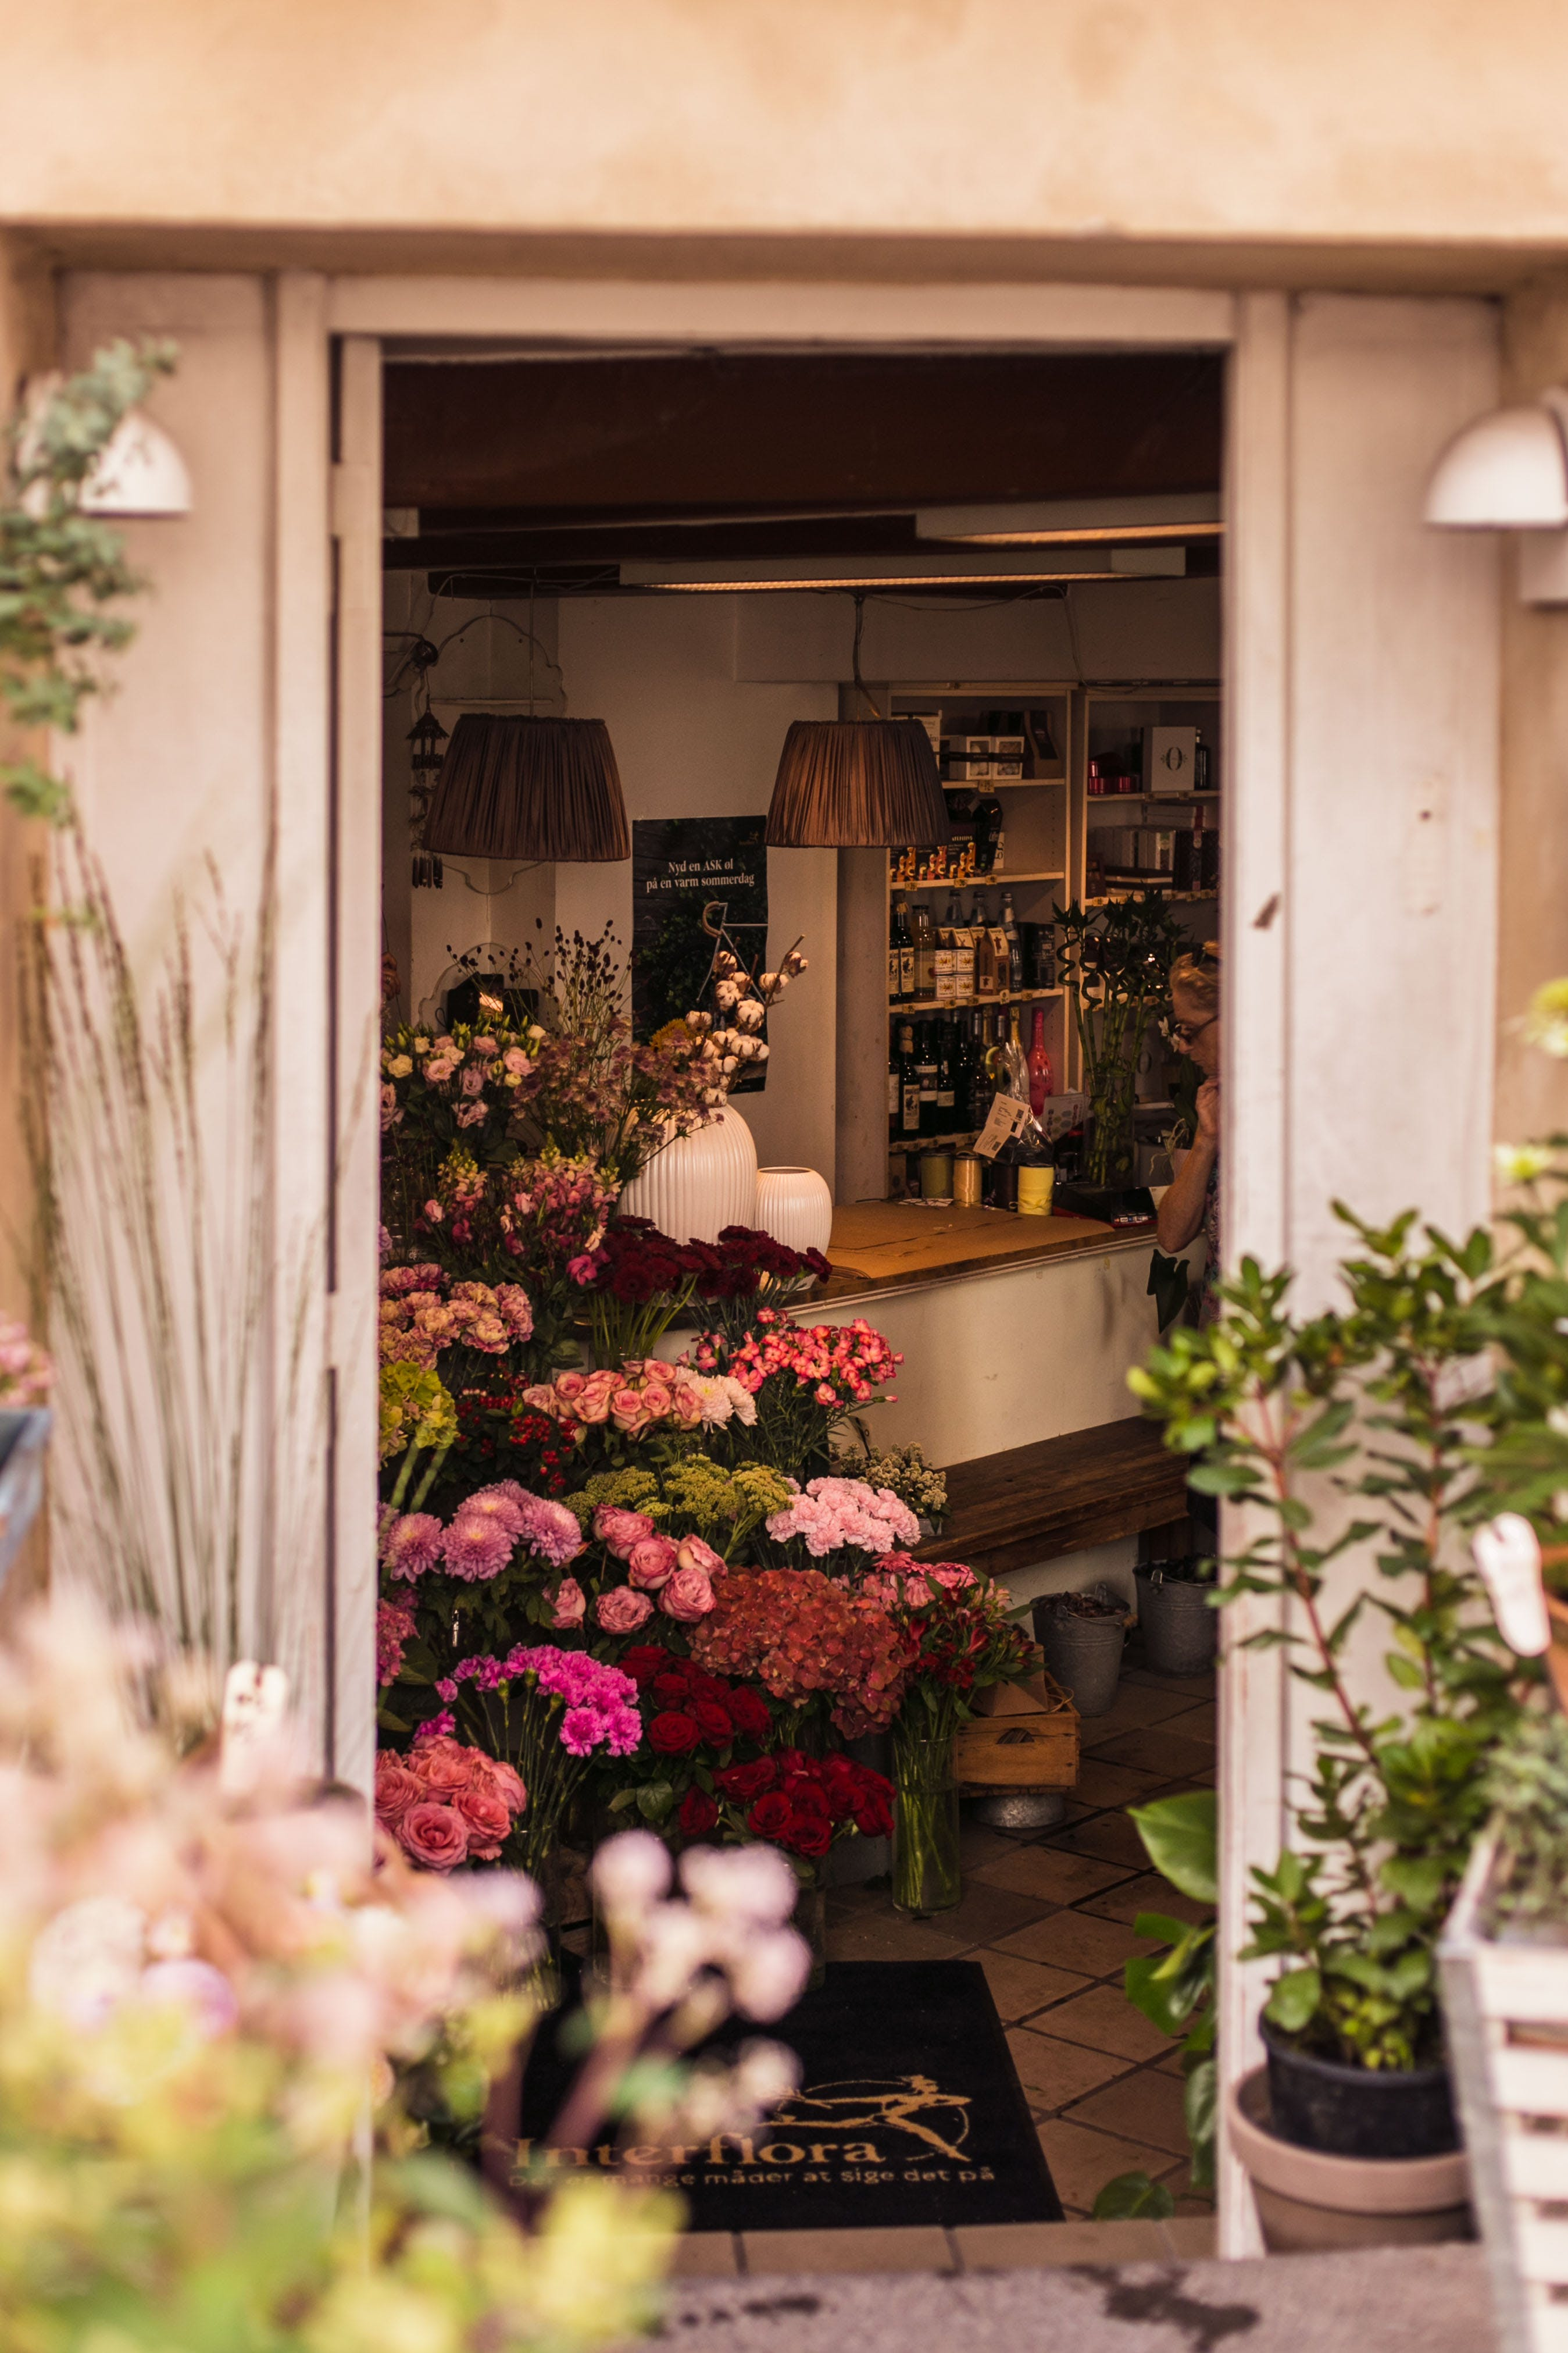 Selective Focus Photography of Flower Shop